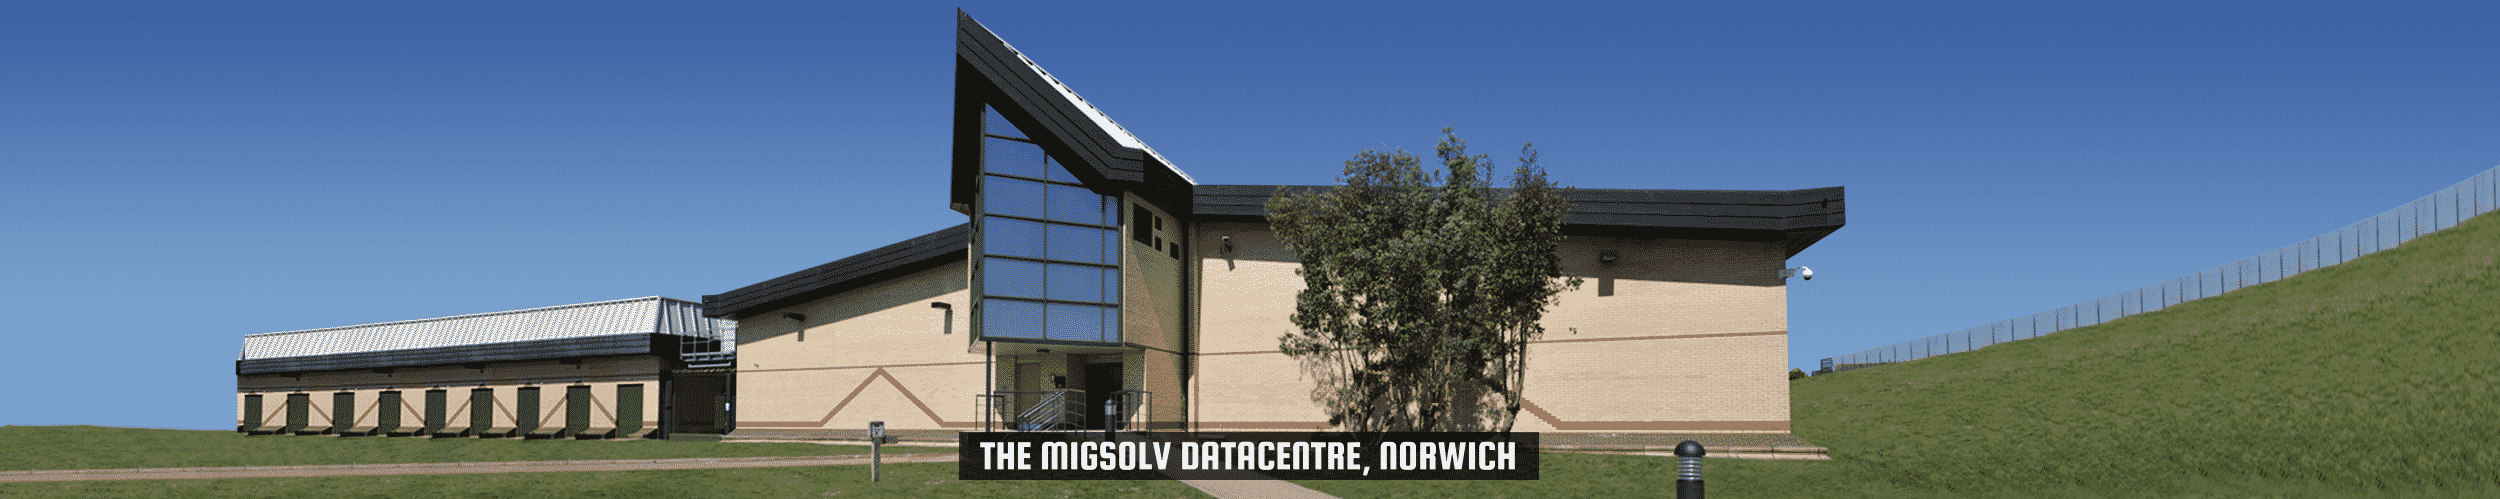 "52Degrees gagna - eiginleikar | ""Migsolv Data Center, Norwich"" 